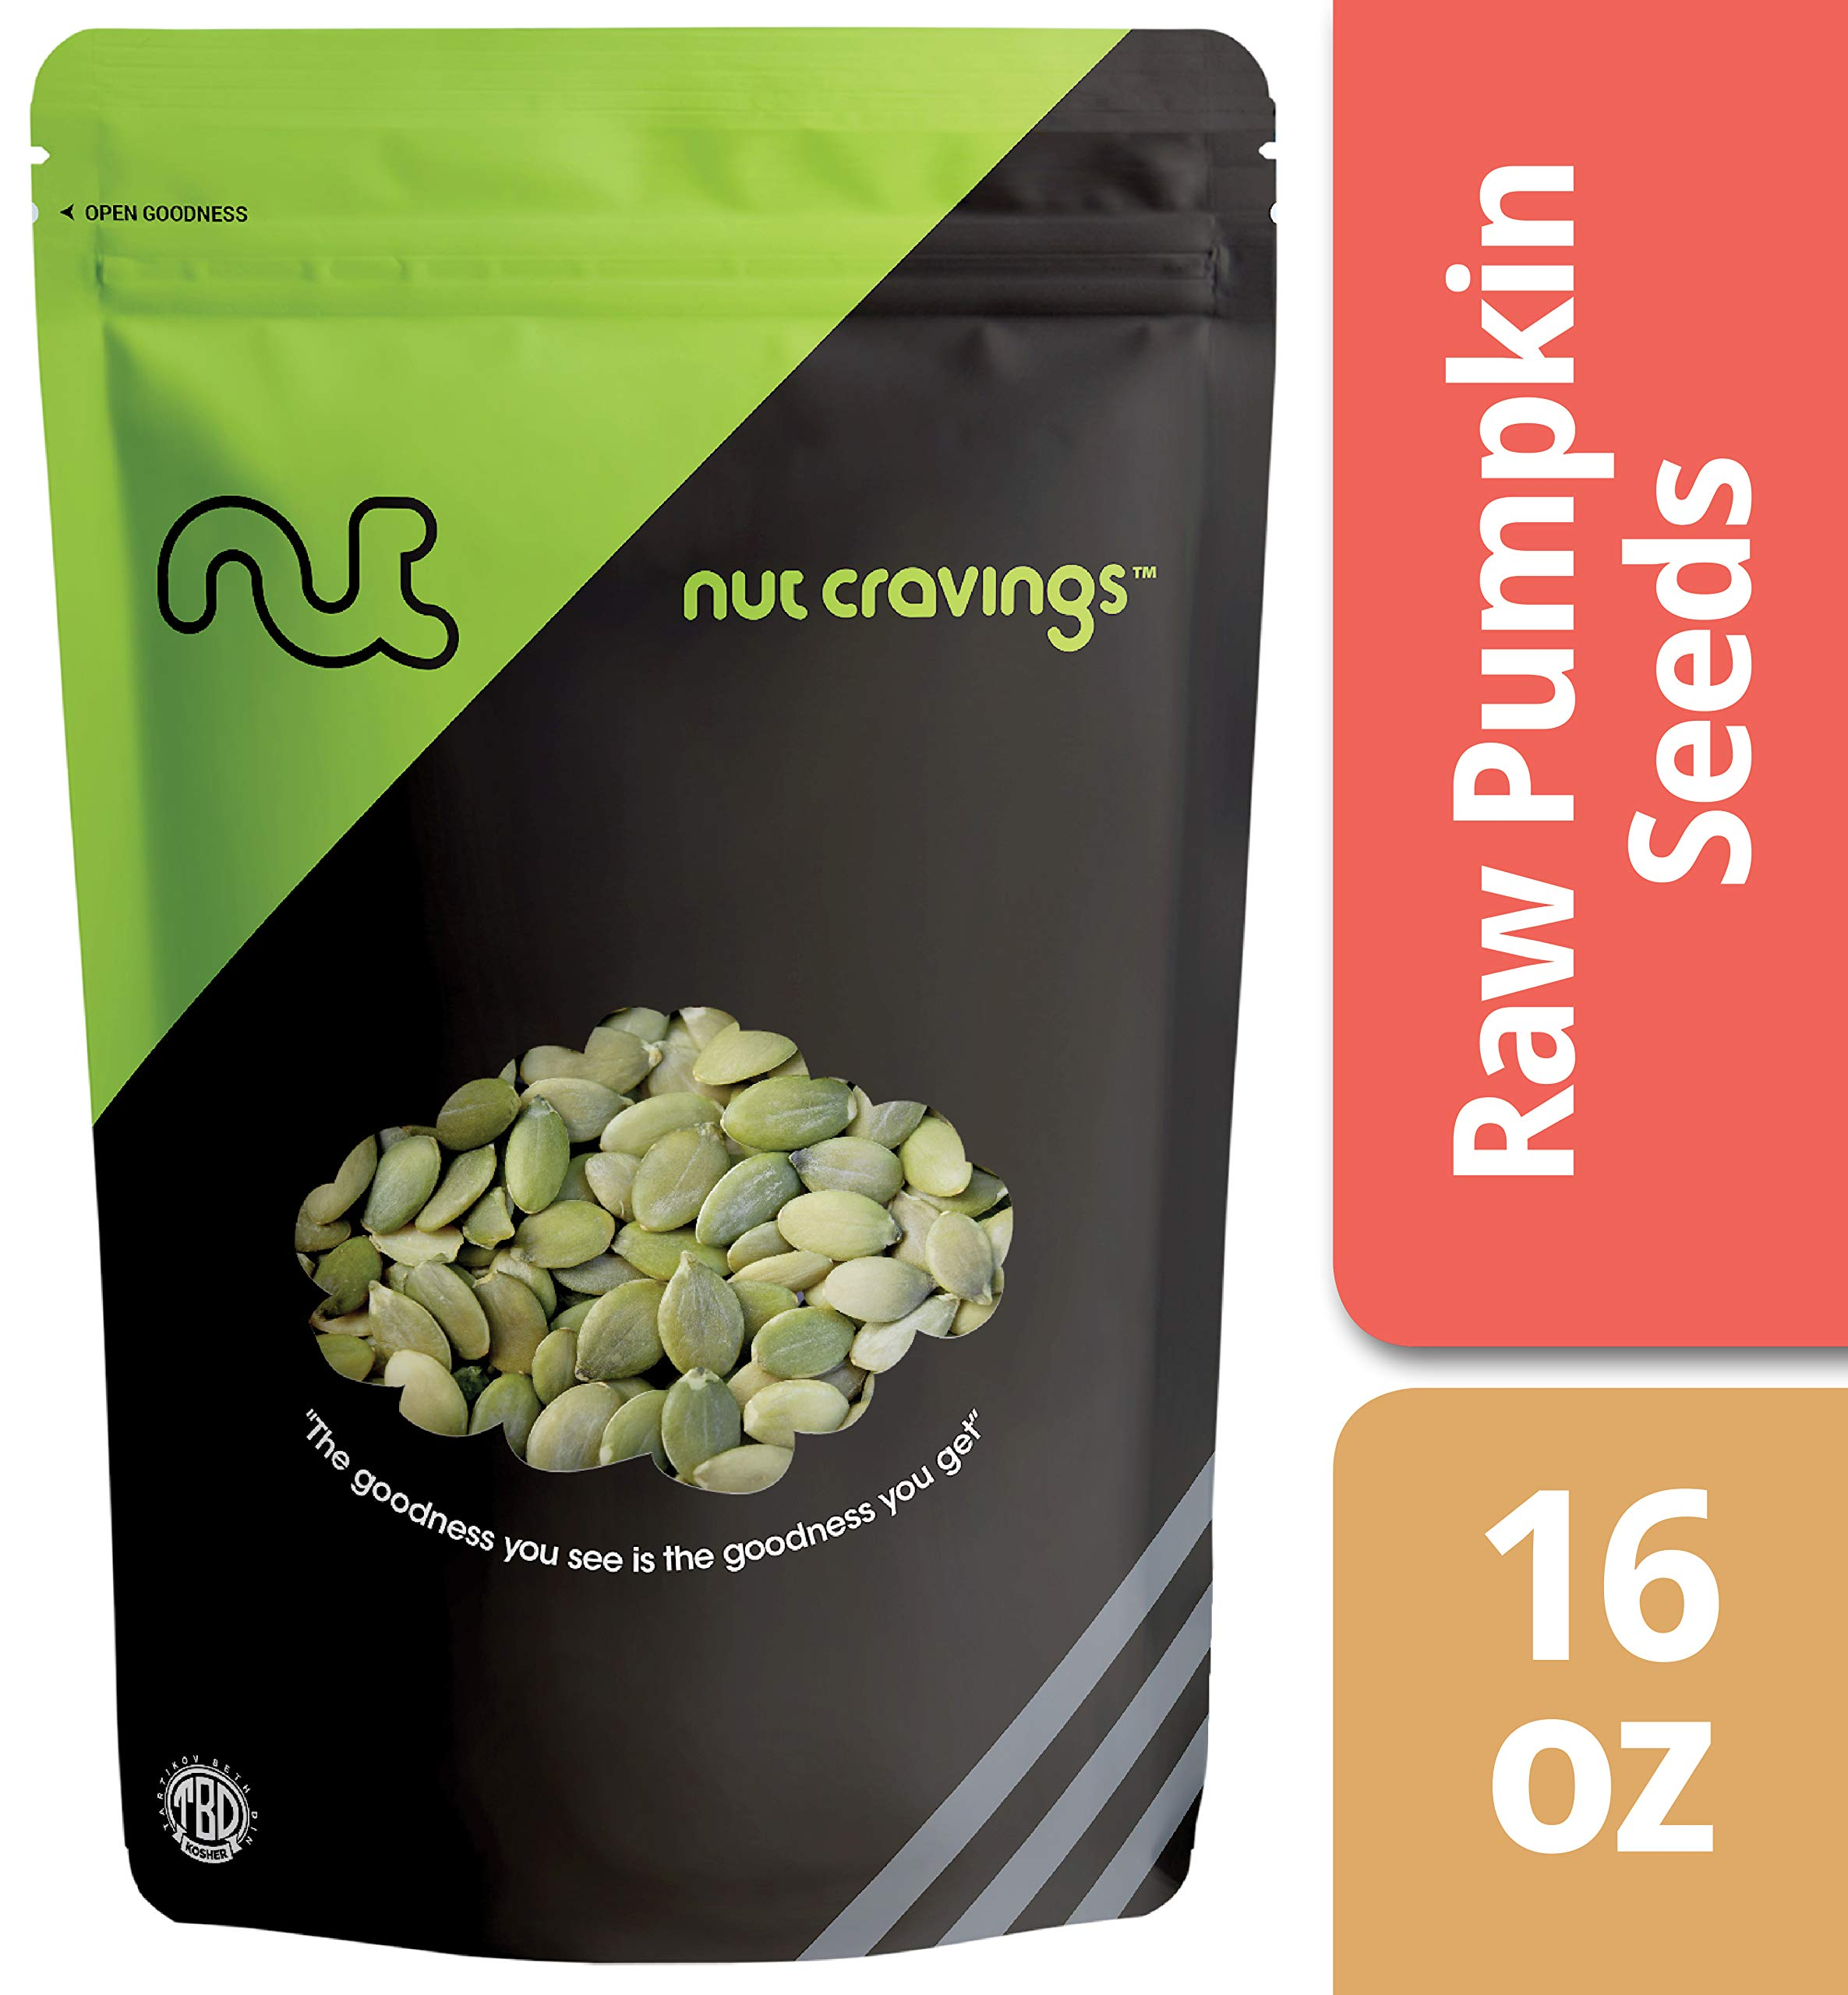 Nut Cravings - Raw Organic Pumpkin Seeds (1 Pound) - Raw Pepitas With No Shell - 16 Ounce by Nut Cravings